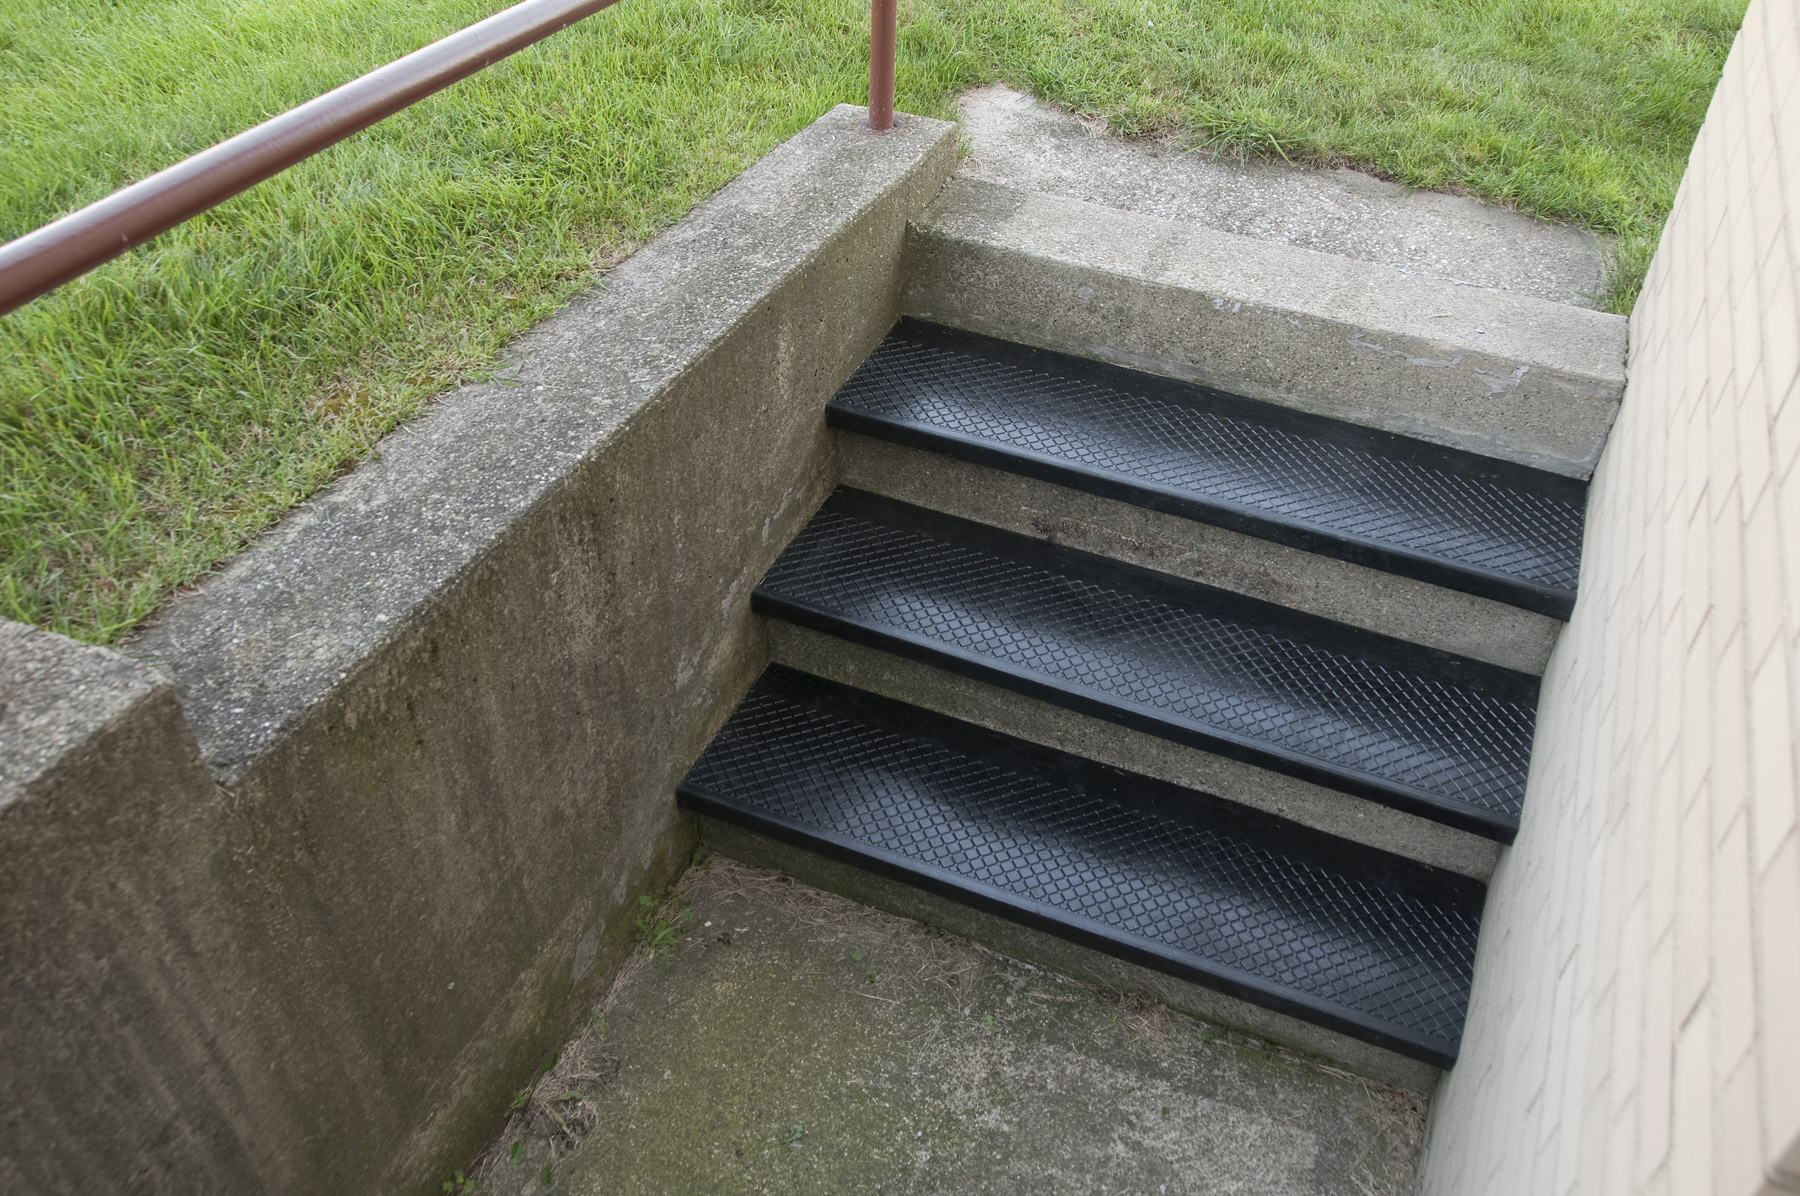 New Outdoor Recycled Rubber Stair Treads From Discount